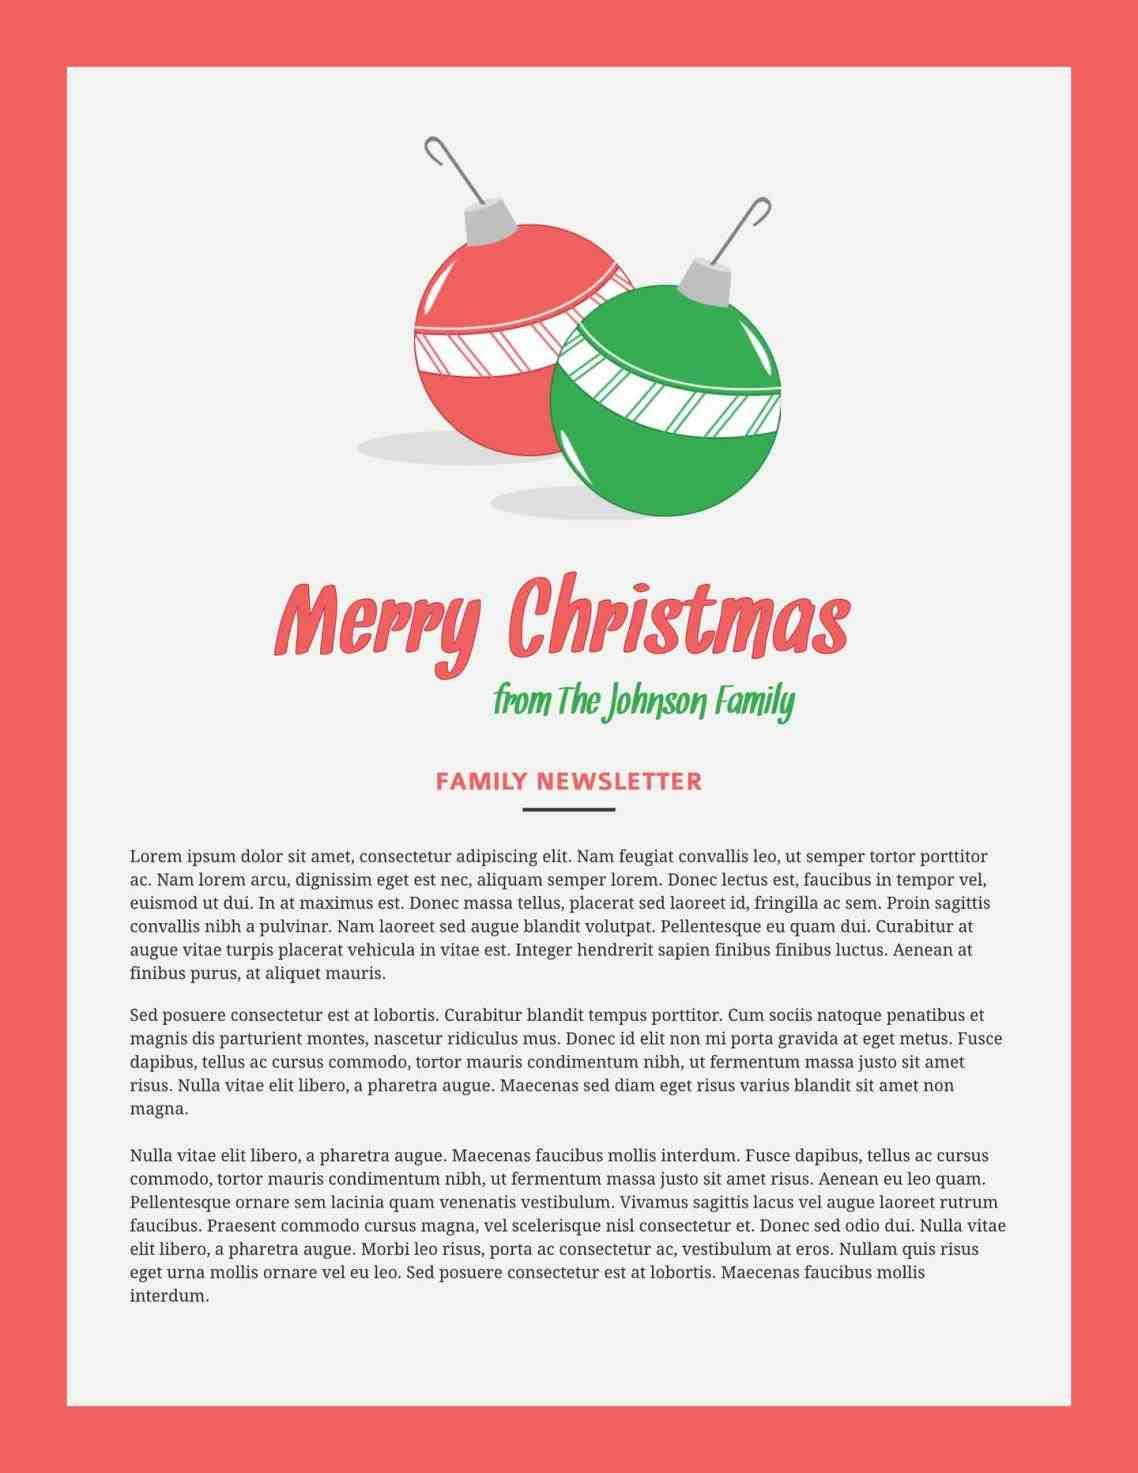 new post free christmas newsletter templates download decors ideas